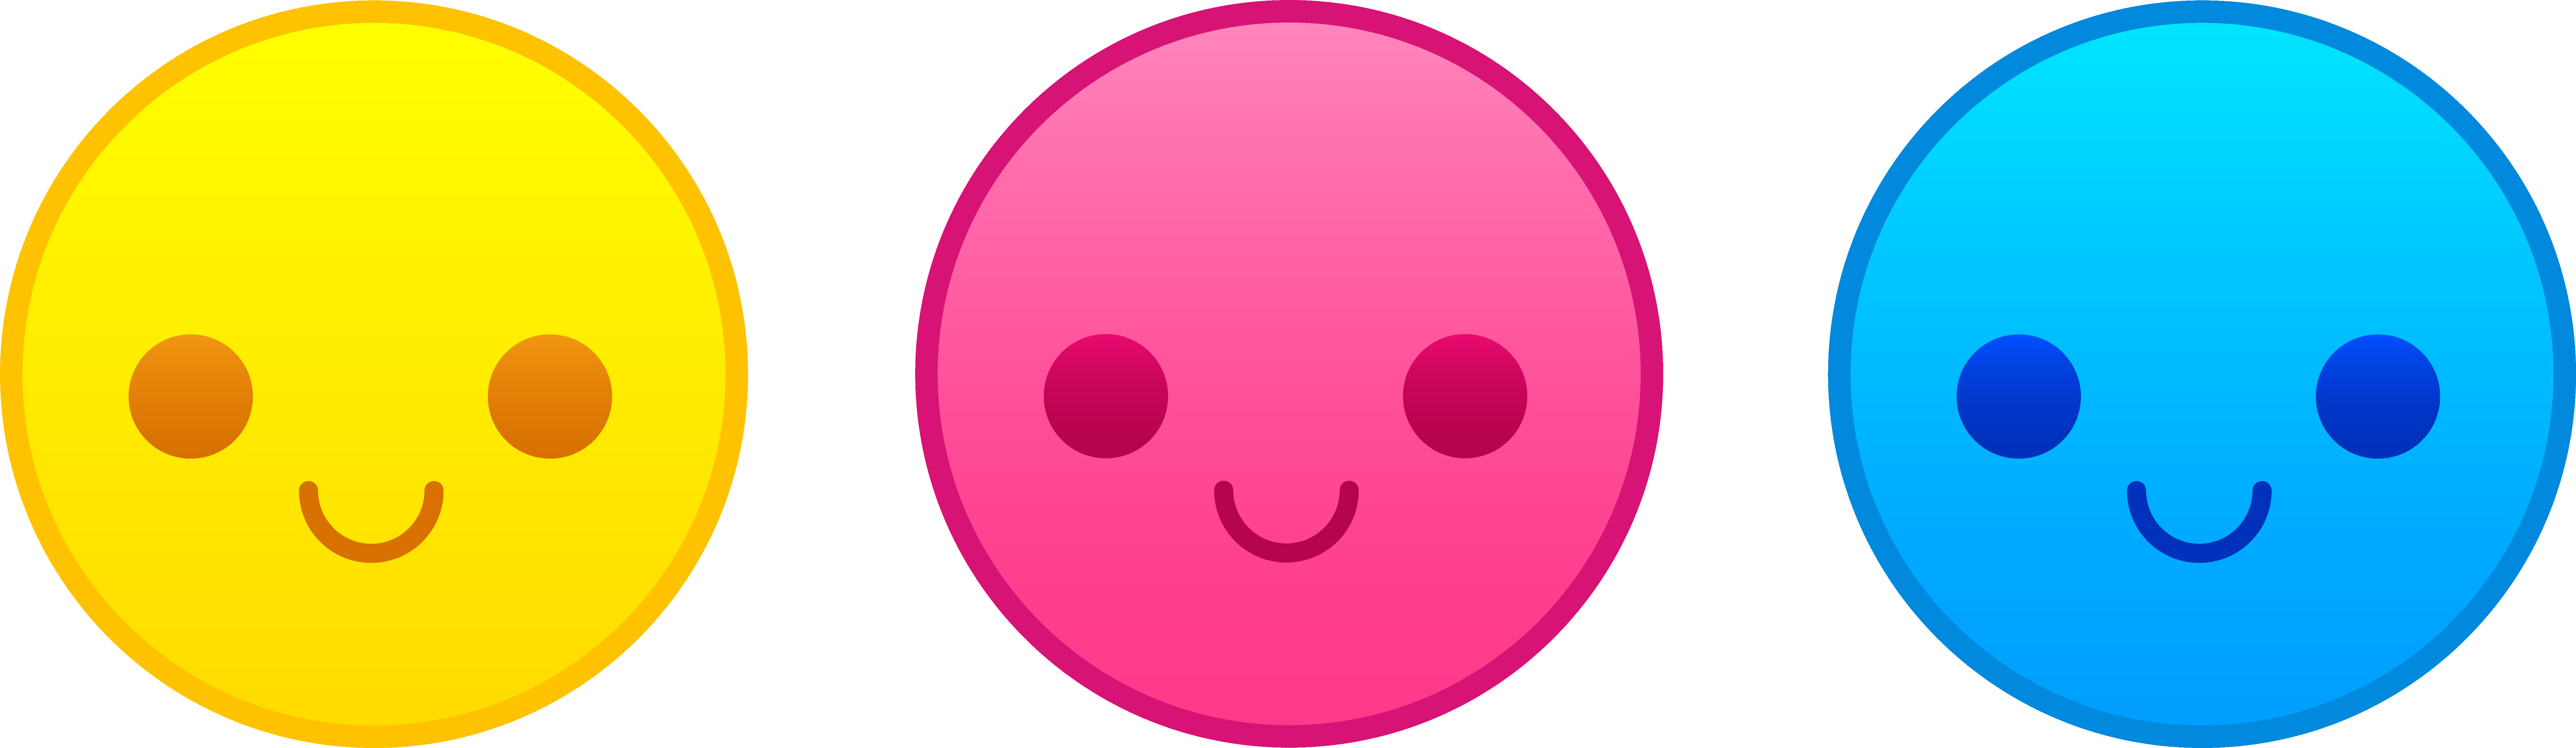 9039x2626 Free Clip Art Smiley Faces Emotions